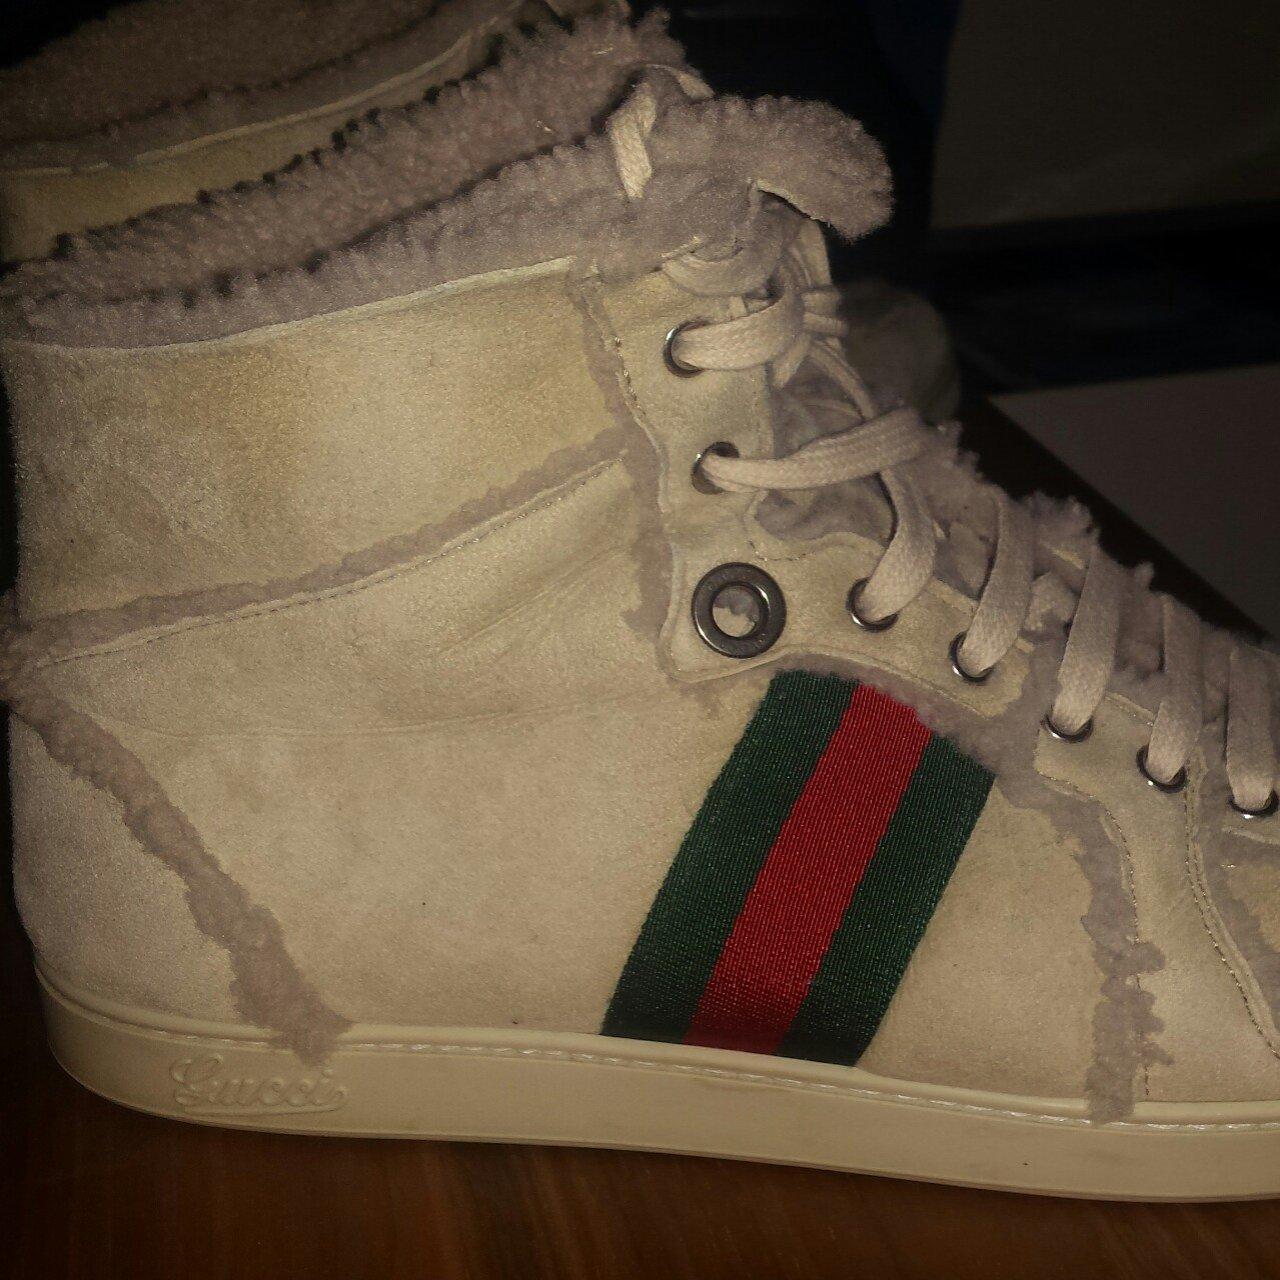 7f25a35dd93 Gucci Sneakers Size 43   UK 9 Condition 8.5 10 New Price in - Depop